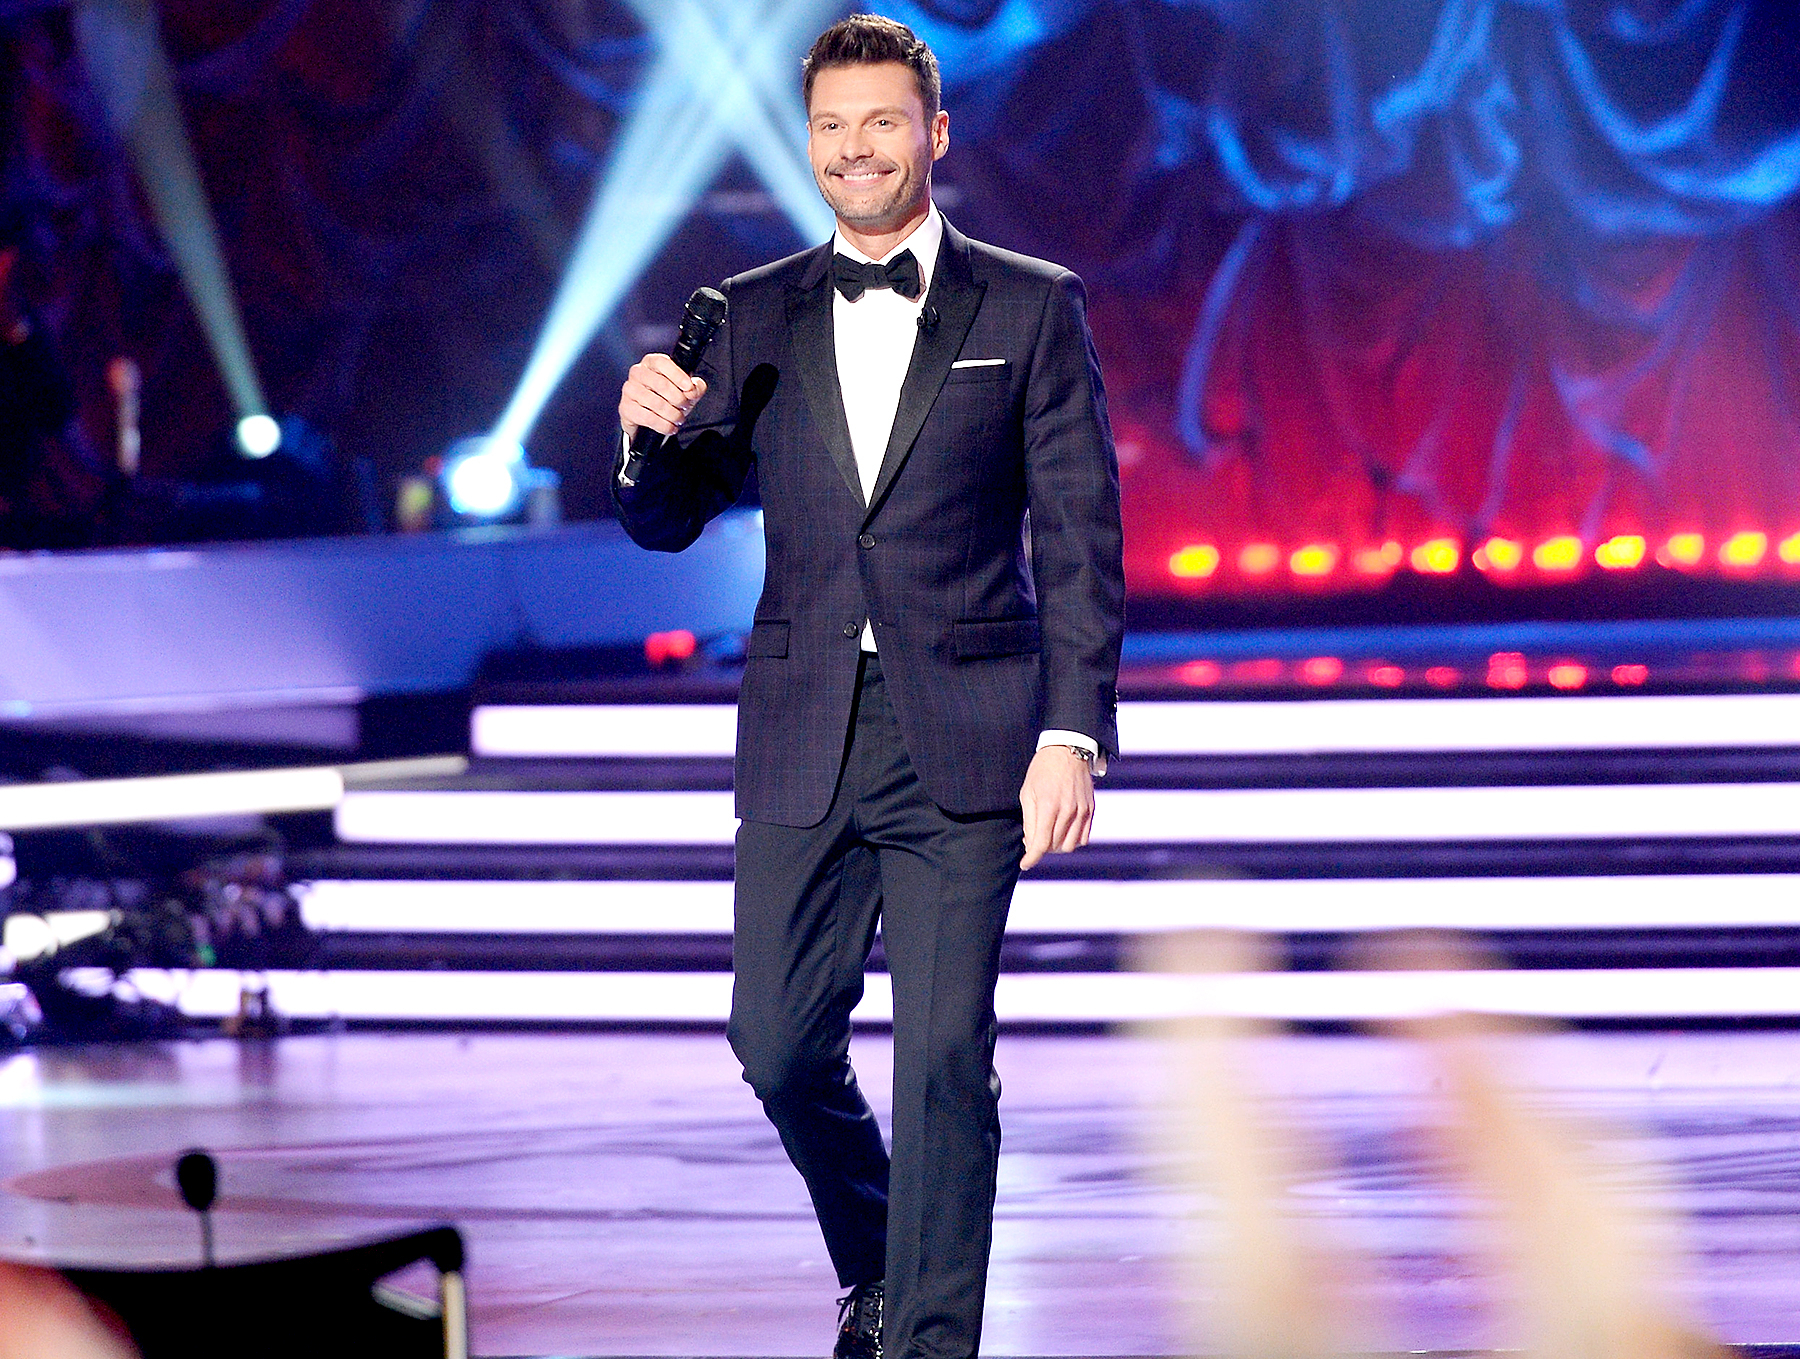 """Ryan Seacrest speaks onstage during """"American Idol"""" XIV Grand Finale at Dolby Theatre on May 13, 2015 in Hollywood, California."""